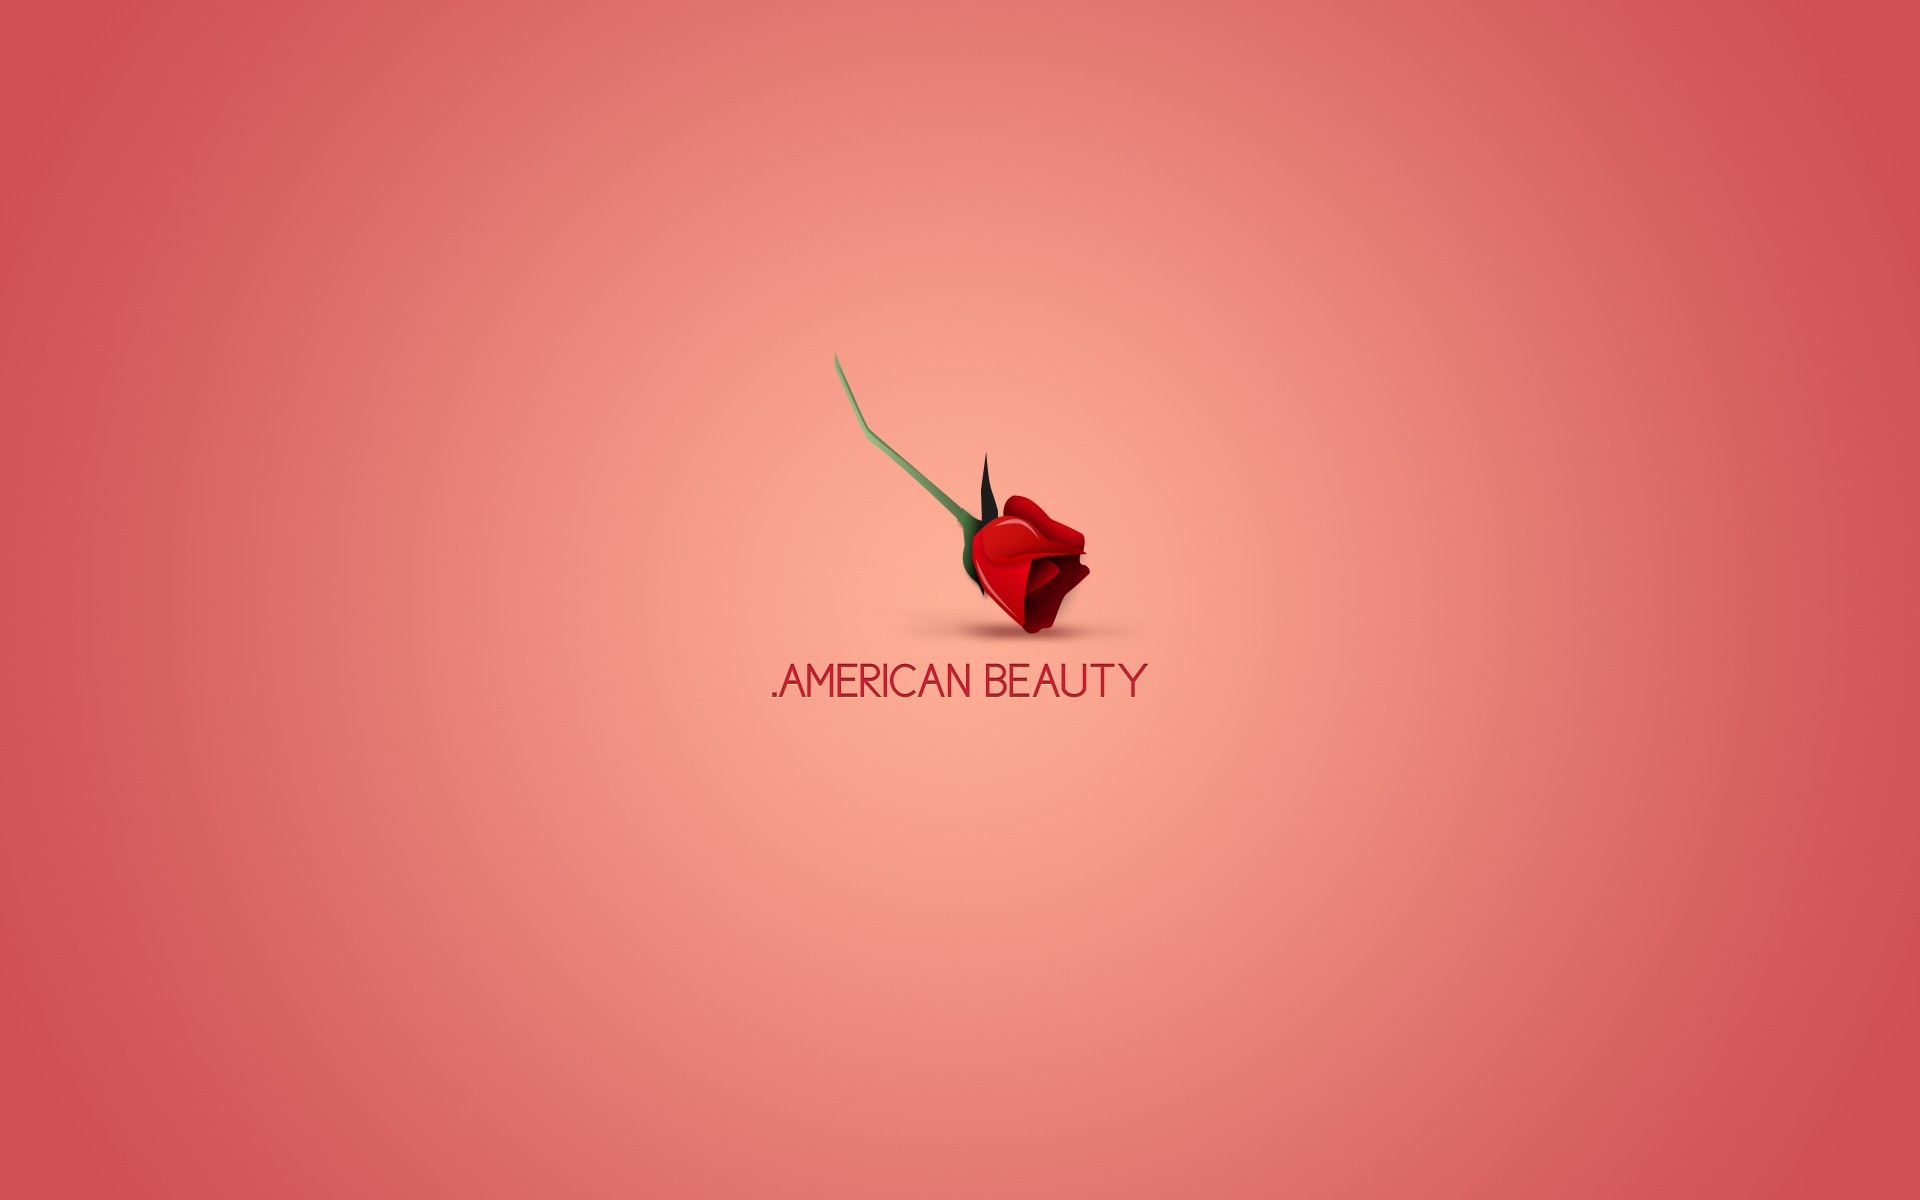 american beauty wallpapers hd / desktop and mobile backgrounds